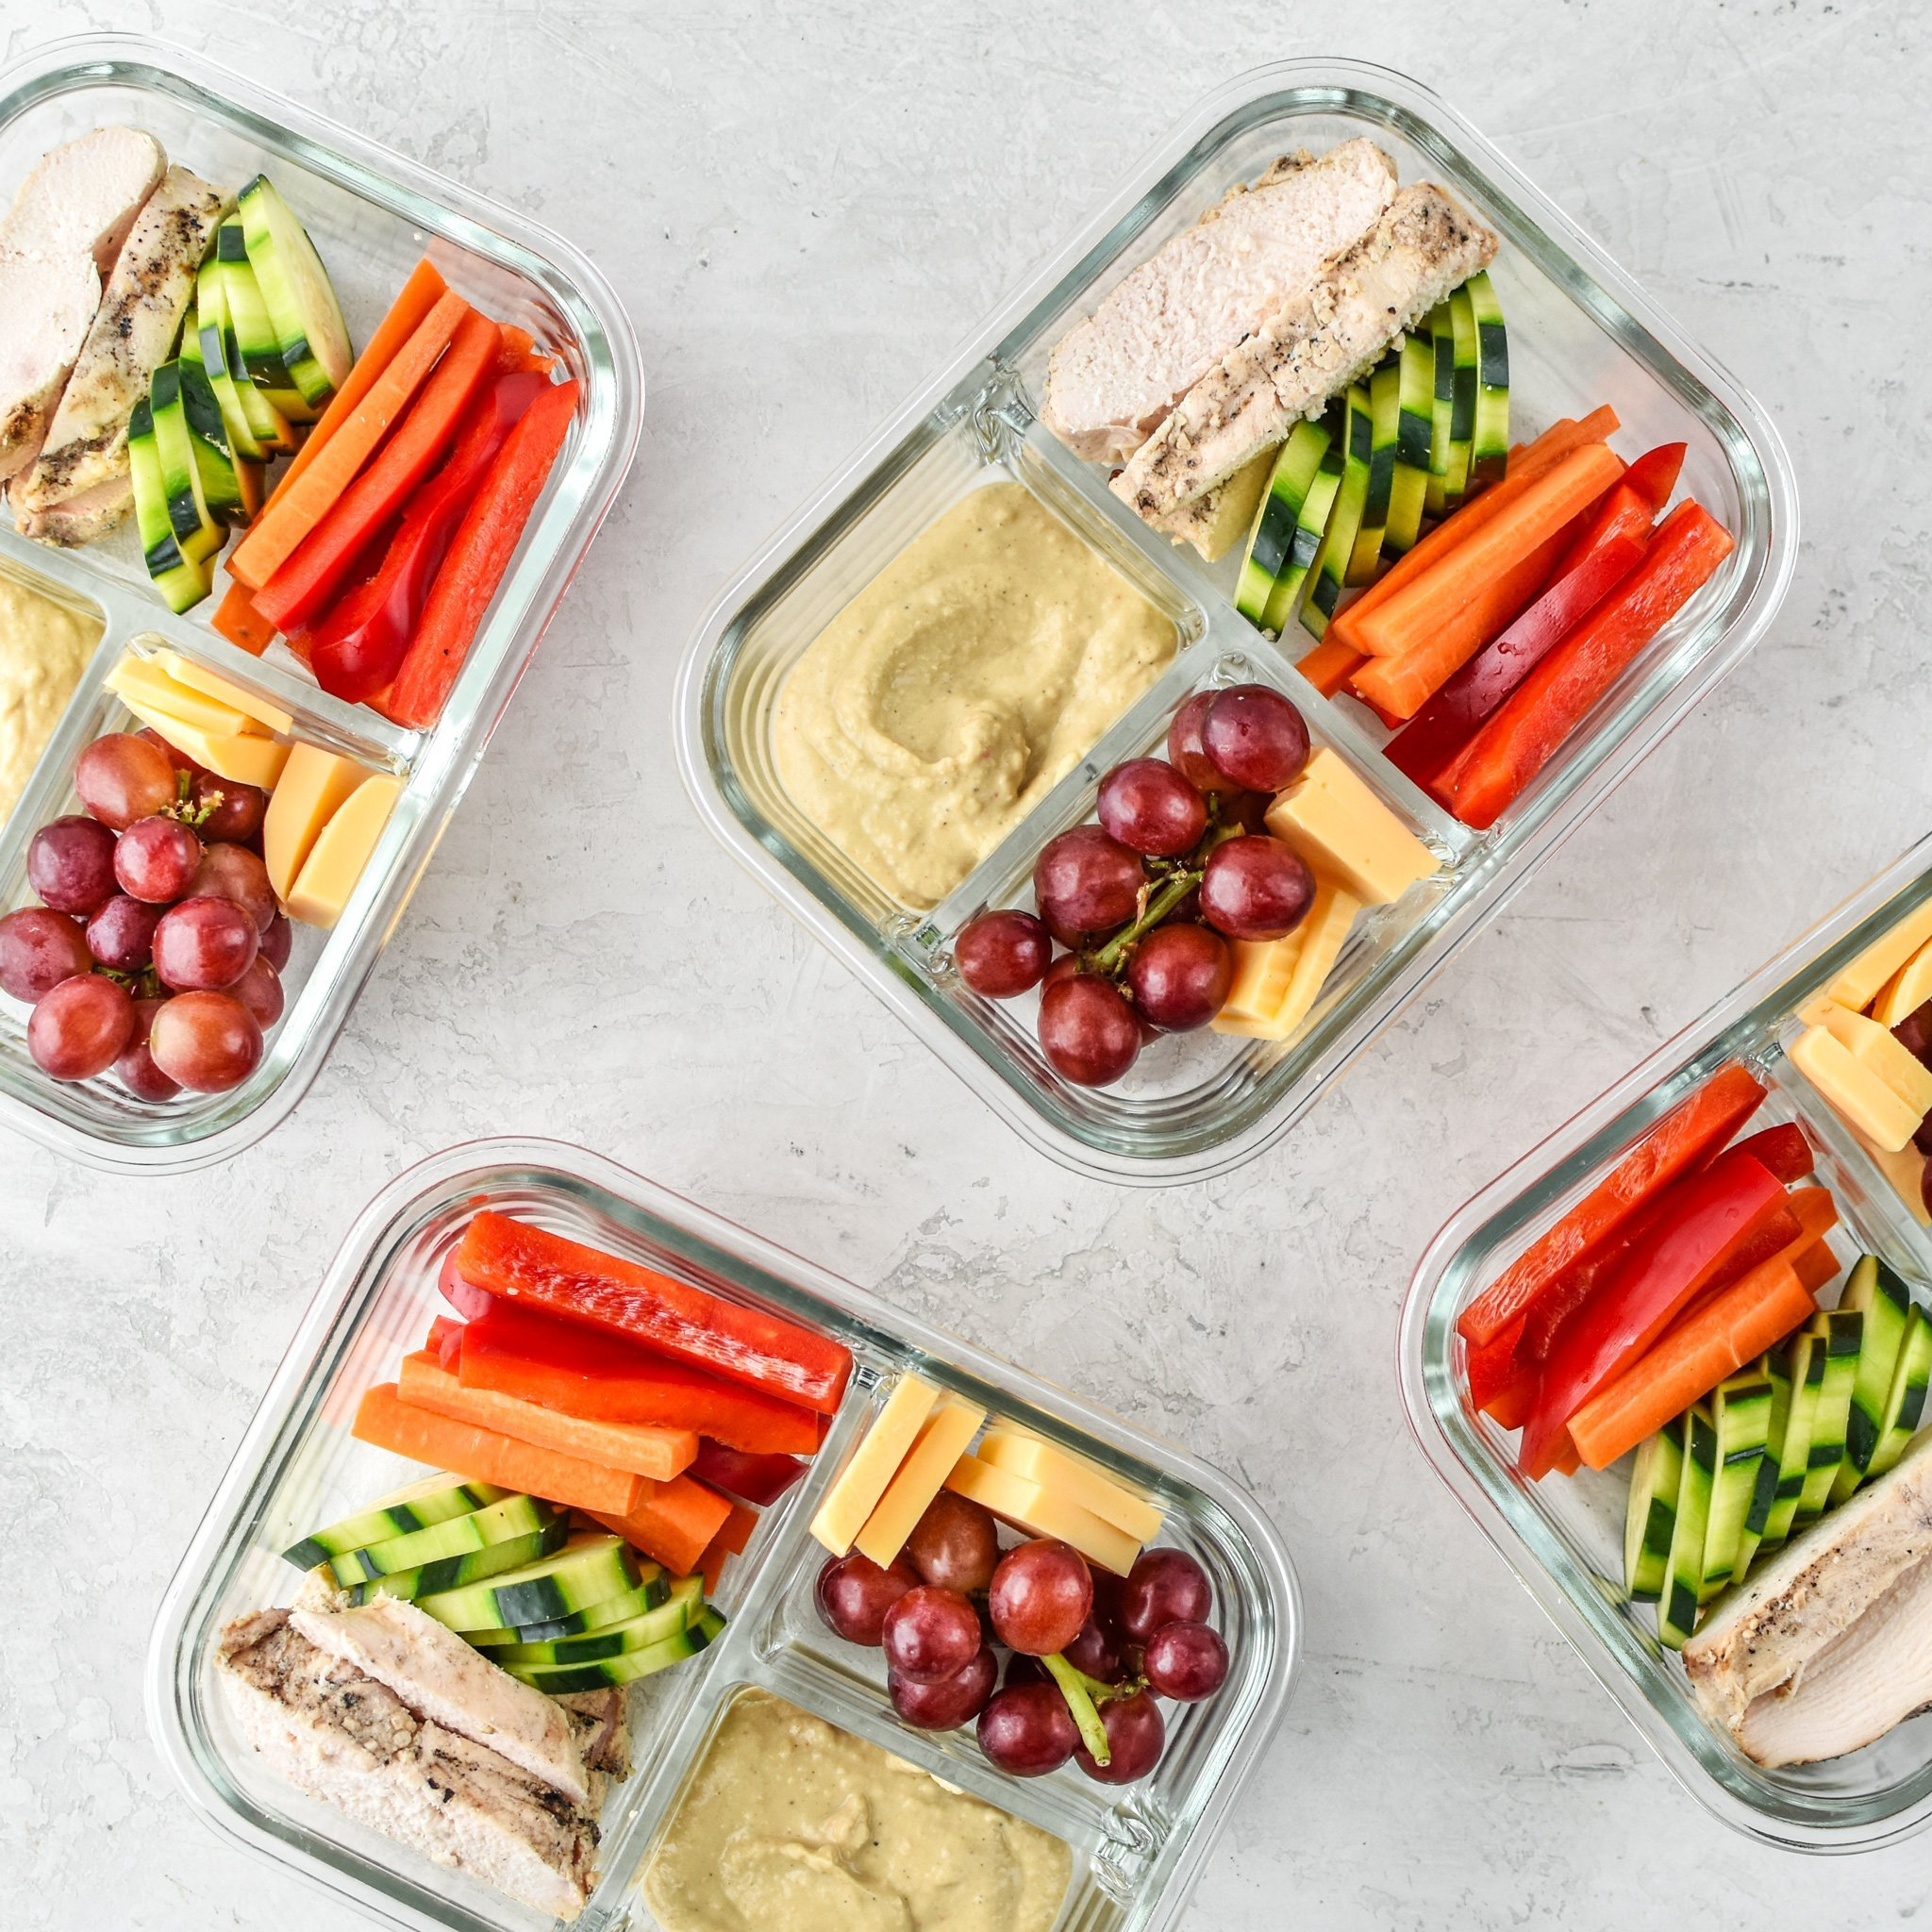 Prep That Lunch - If your mornings are anything like ours, making school lunches can often feel like an afterthought. That's why I love this make-ahead chicken-hummus bento from Project Meal Plan. You can make it the night – or even a few days before – to create a little space for yourself in the AM.